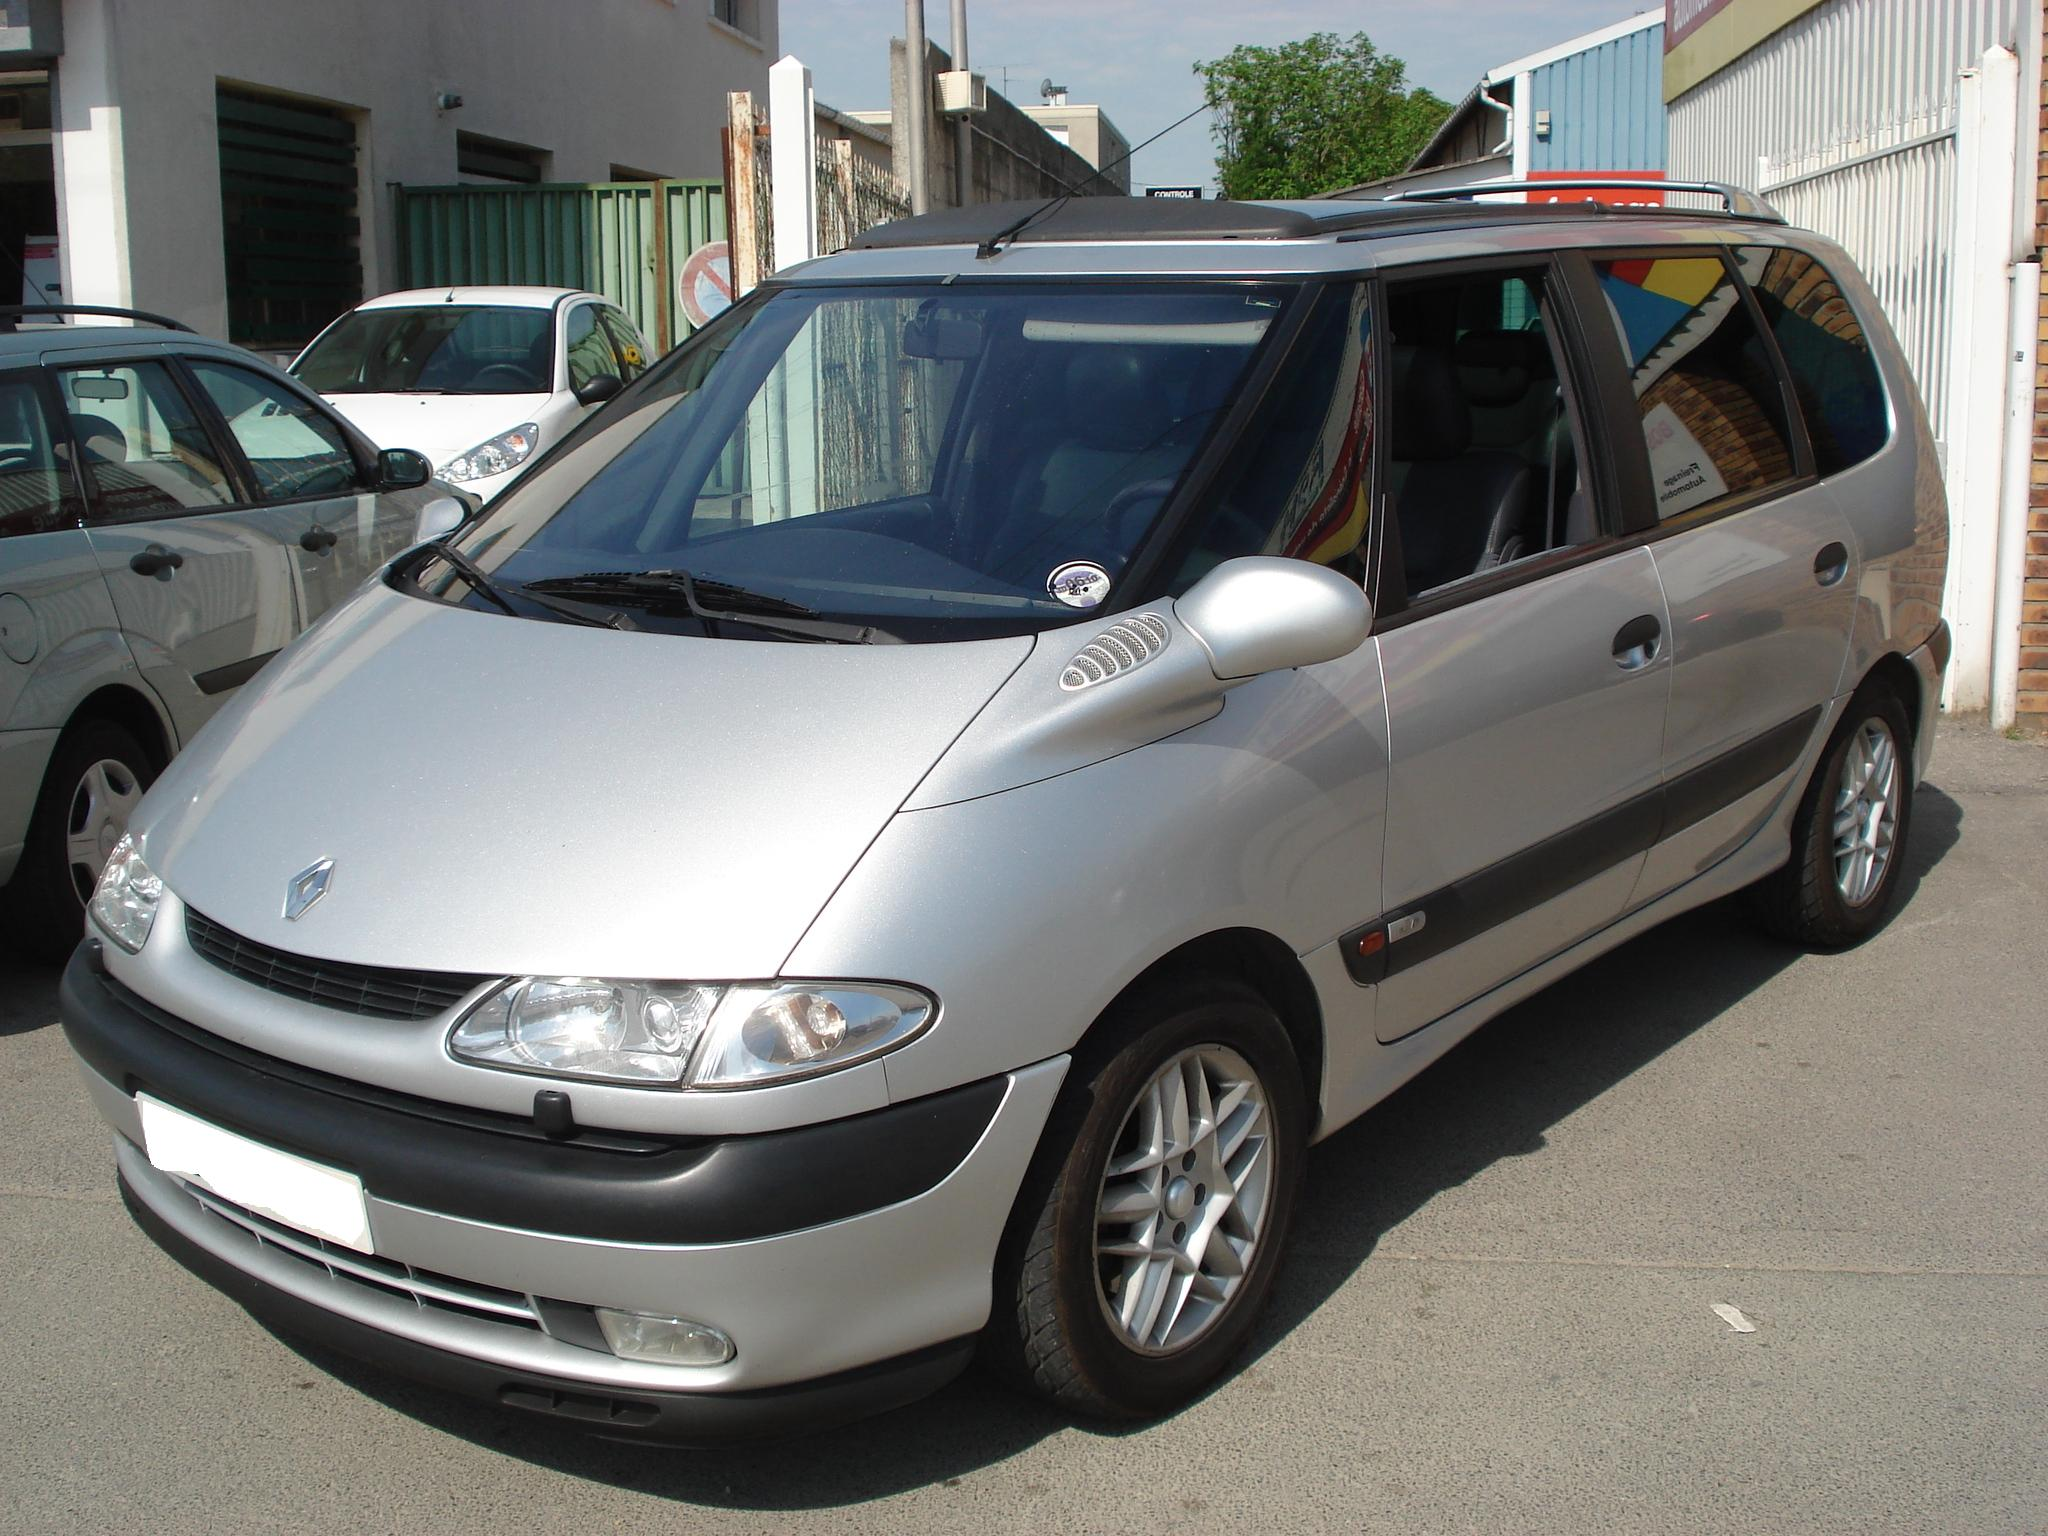 2002 renault espace photos informations articles. Black Bedroom Furniture Sets. Home Design Ideas